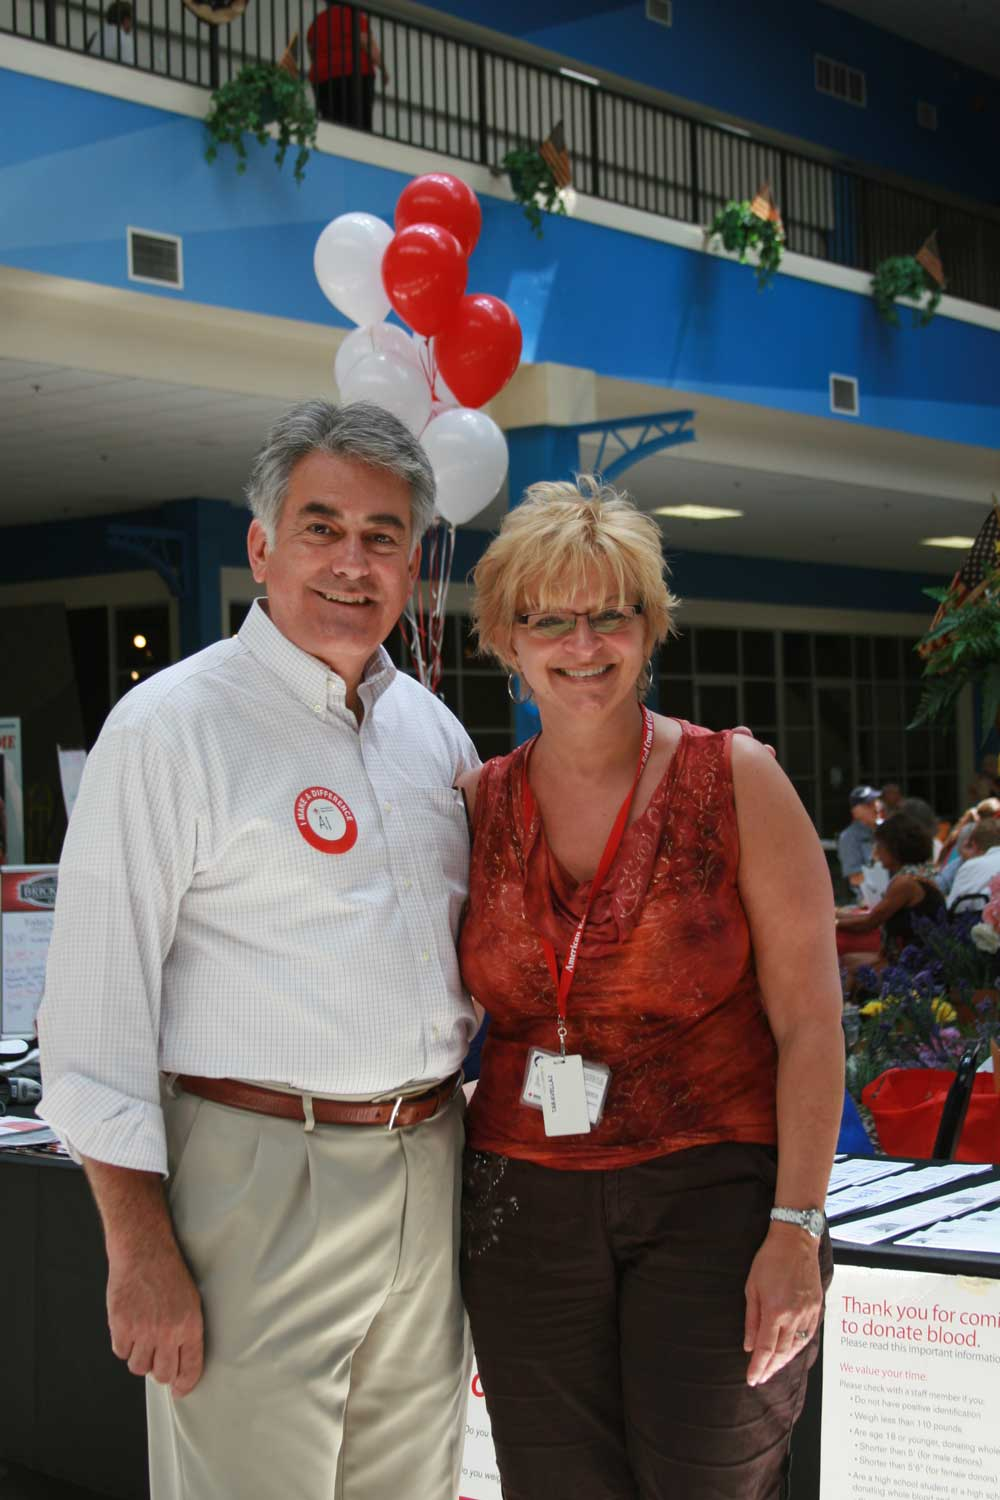 Assemblyman Stirpe with Rosie Taravella, the Regional Executive Officer of the American Red Cross.